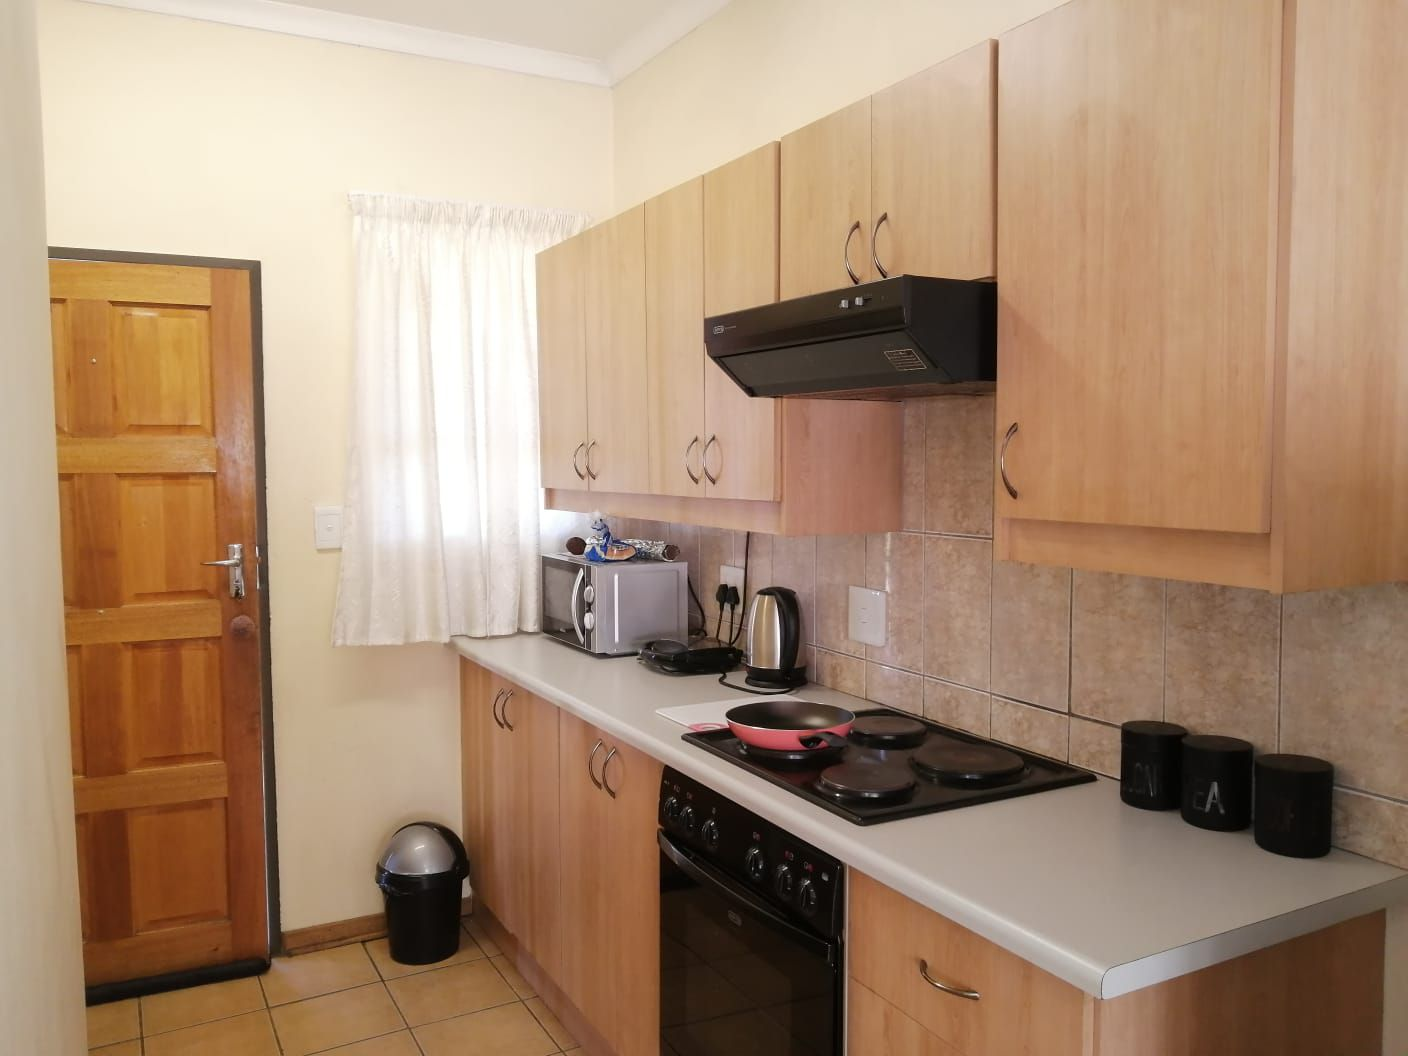 Apartment in Central - WhatsApp Image 2021-05-27 at 12.54.02 (2).jpeg